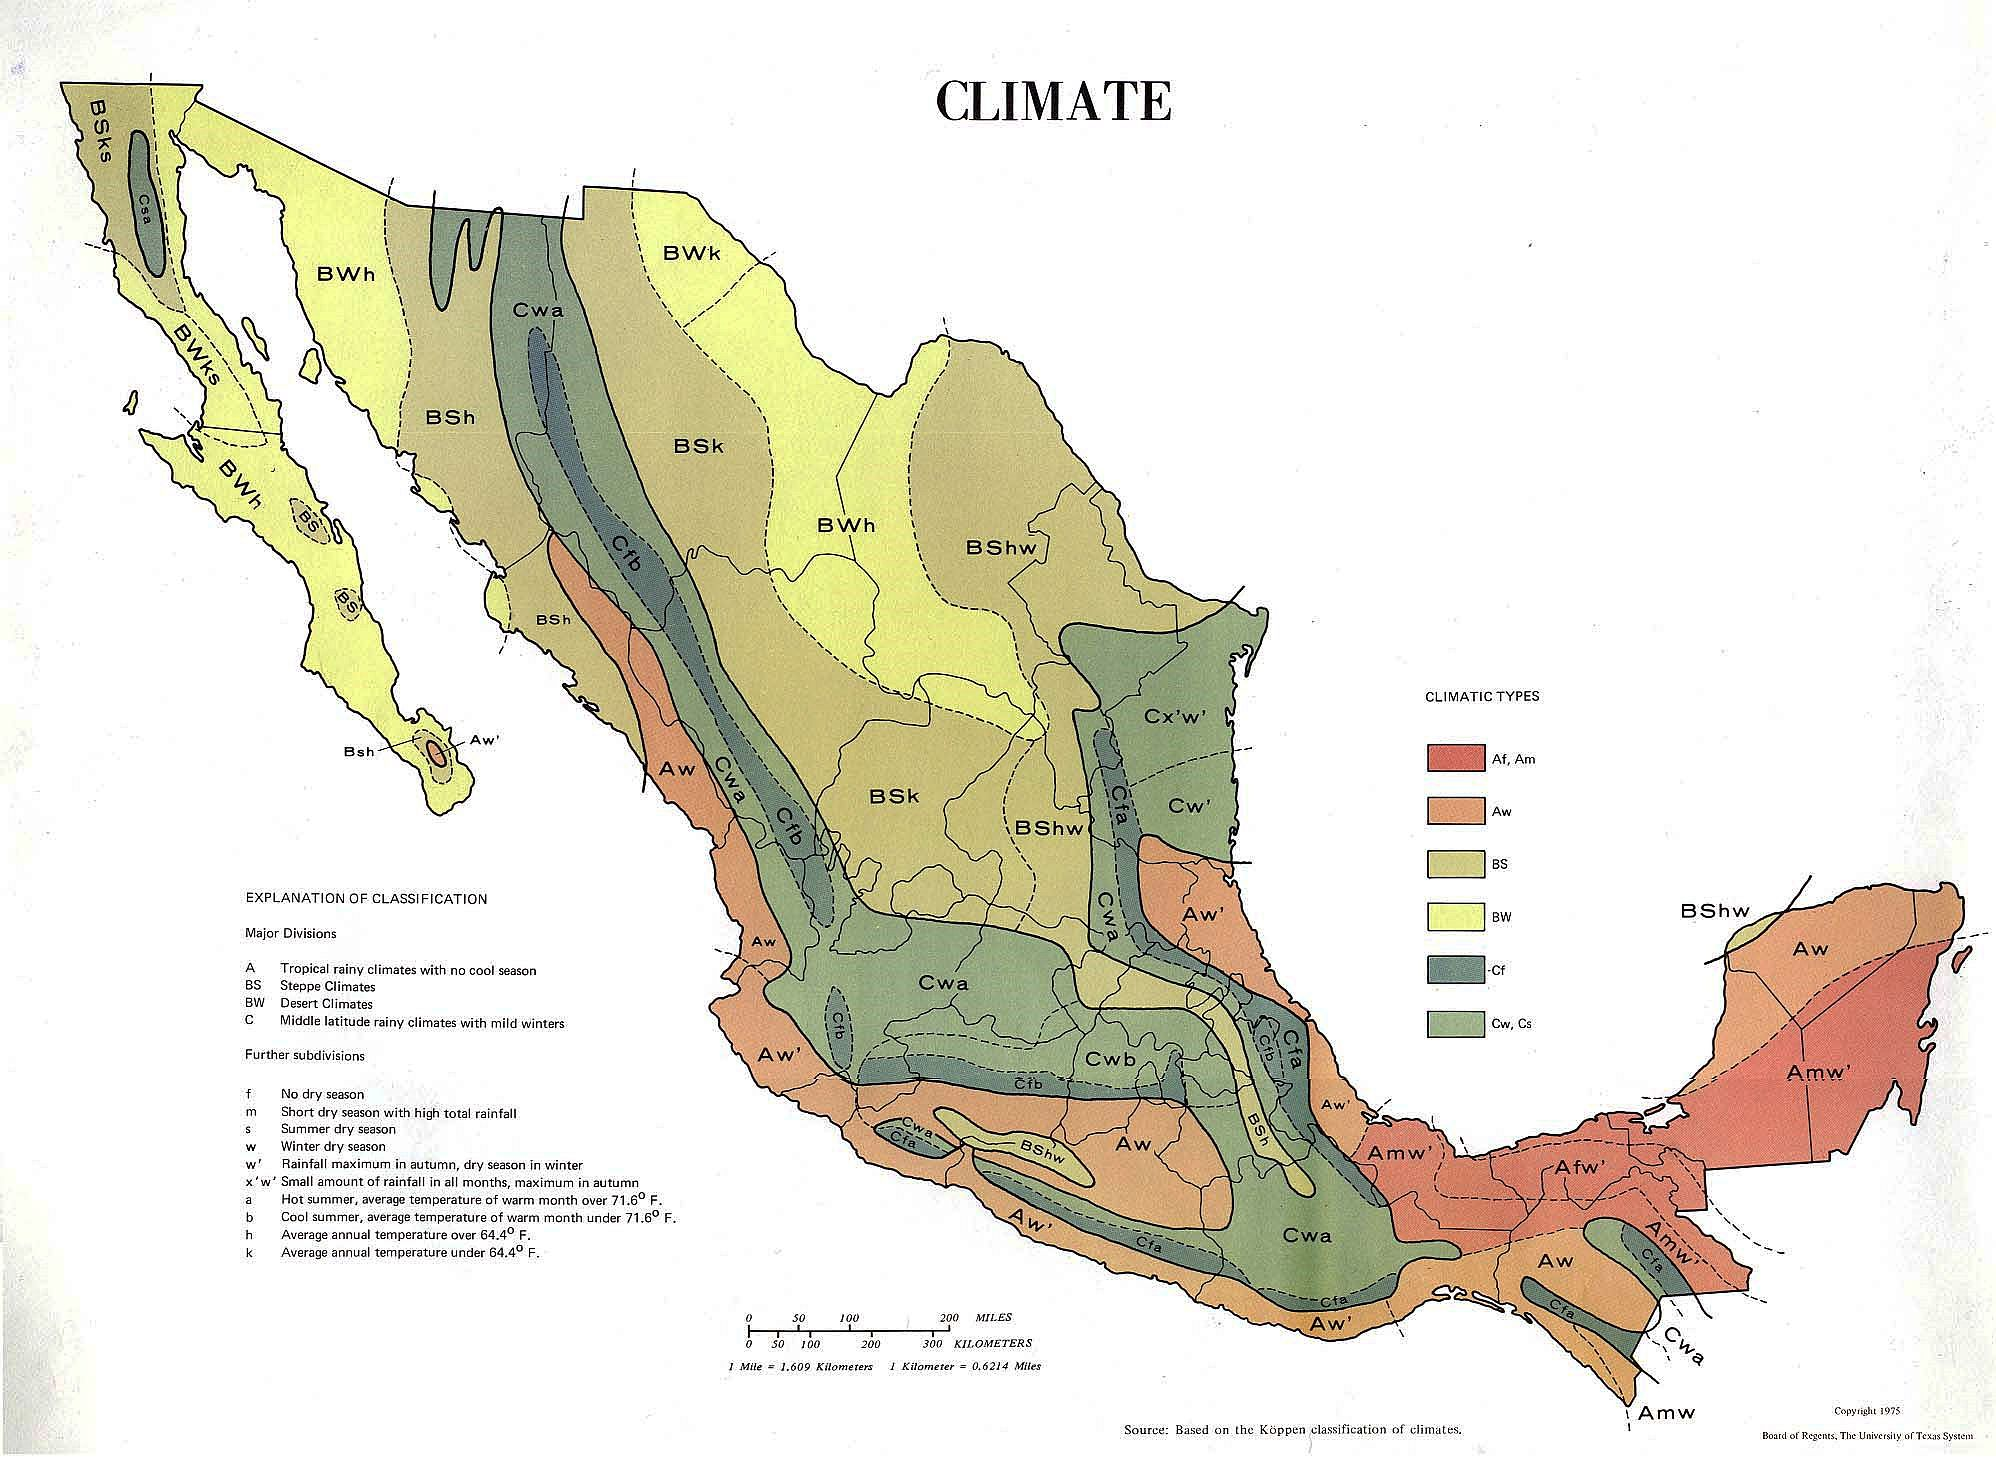 images/climatemap_mexico_sm